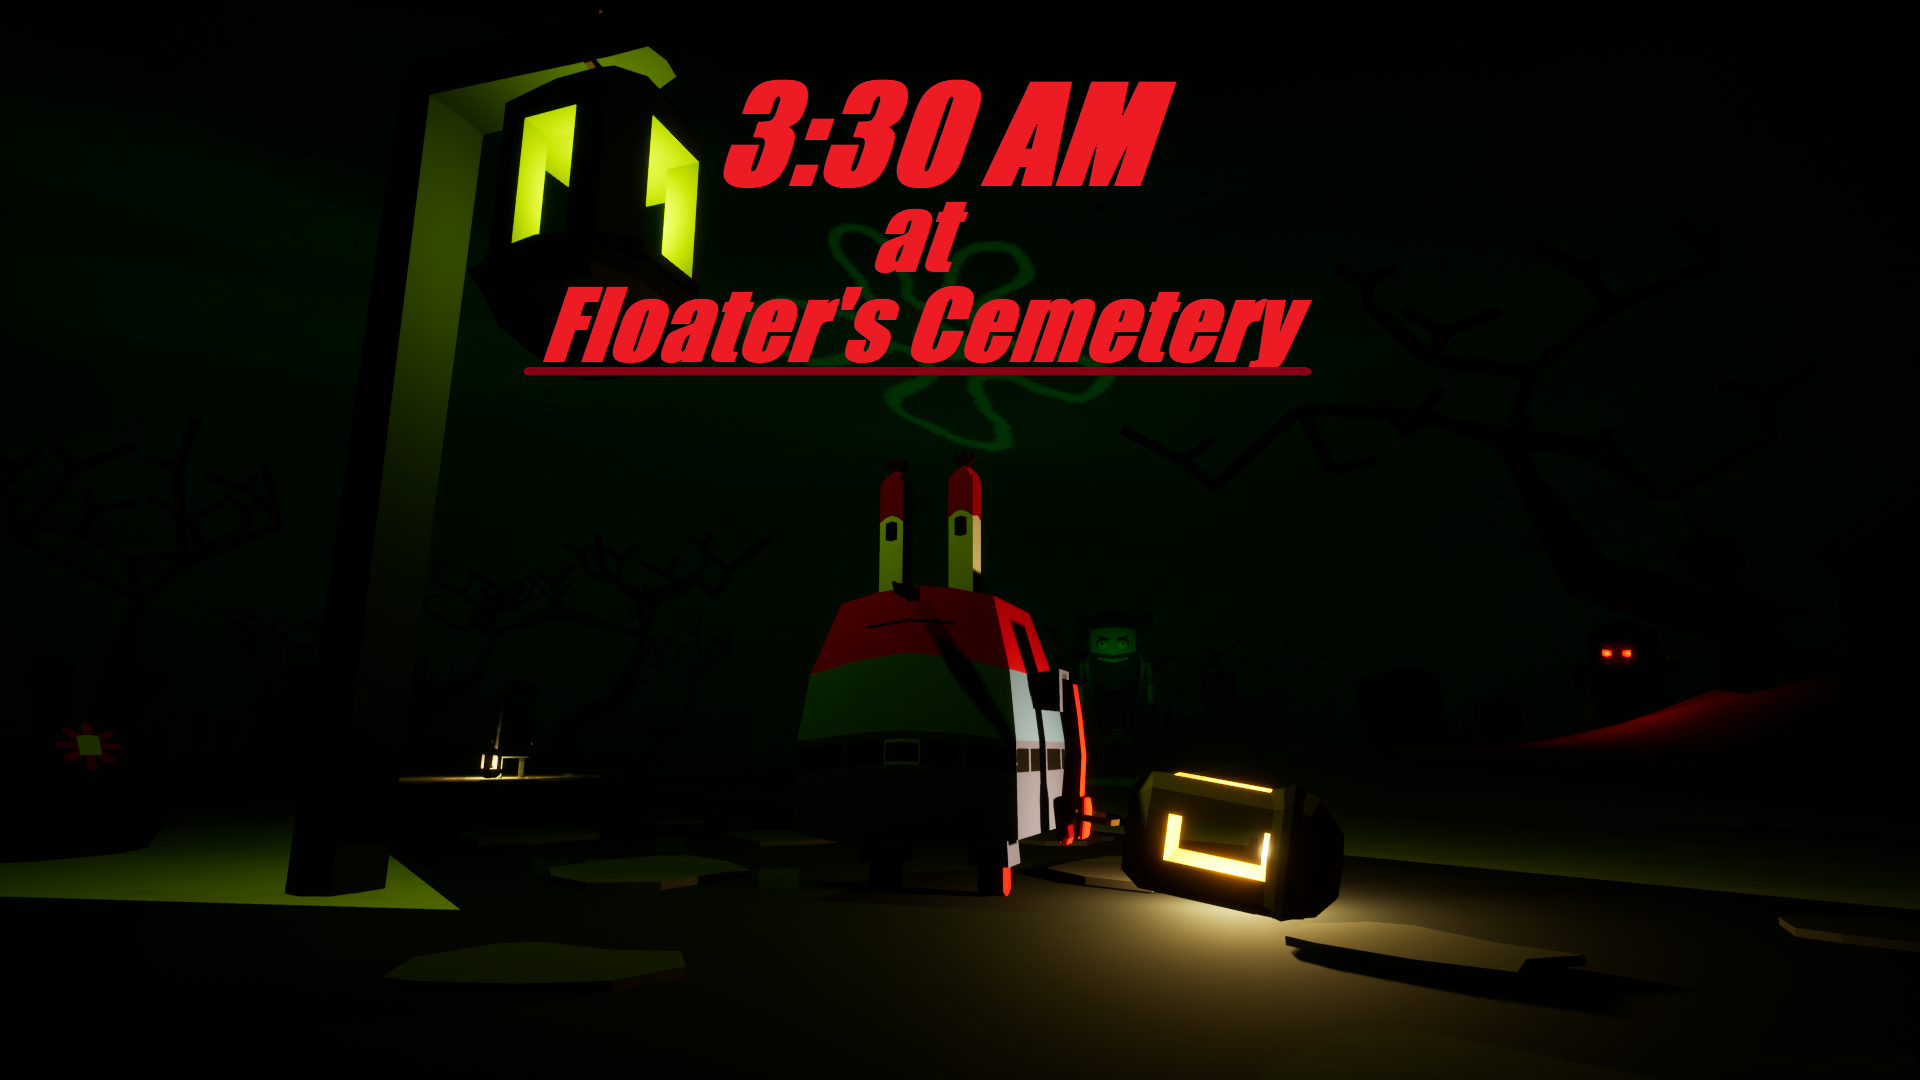 3:30 AM at Floater's Cemetery by Dave Microwaves Games